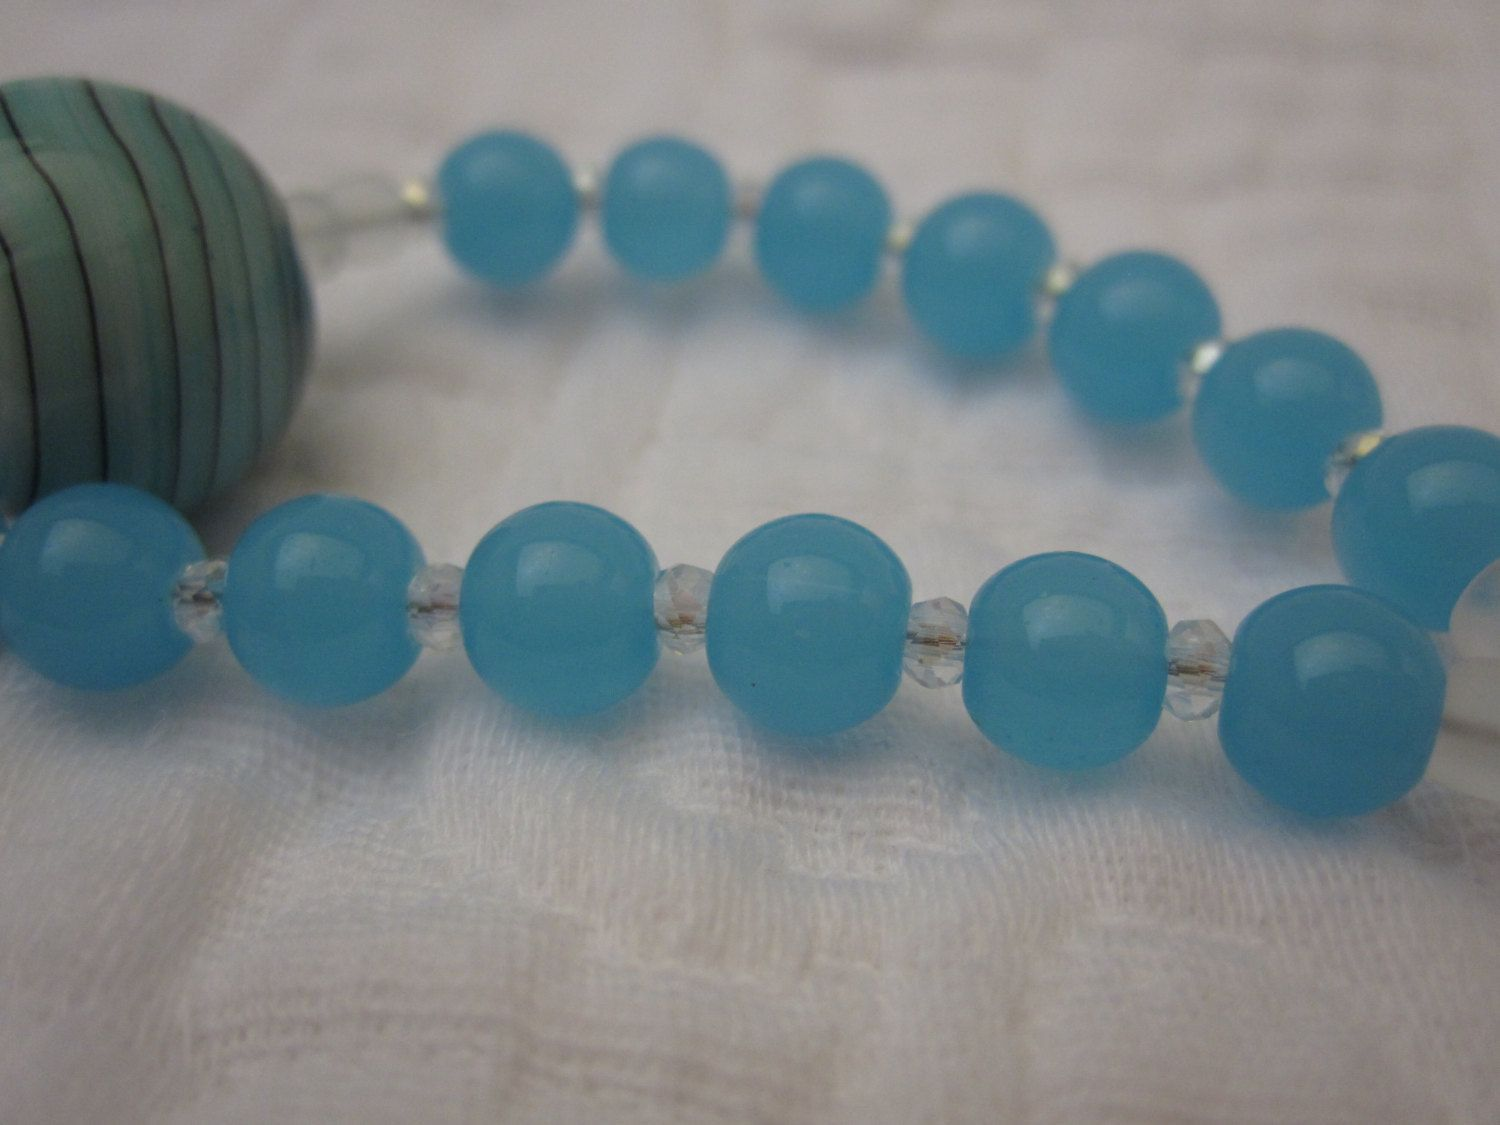 Prayer Beads - Anglican, Protestant - Glass, Cross, Rosary by 1Bead1Prayer on Etsy